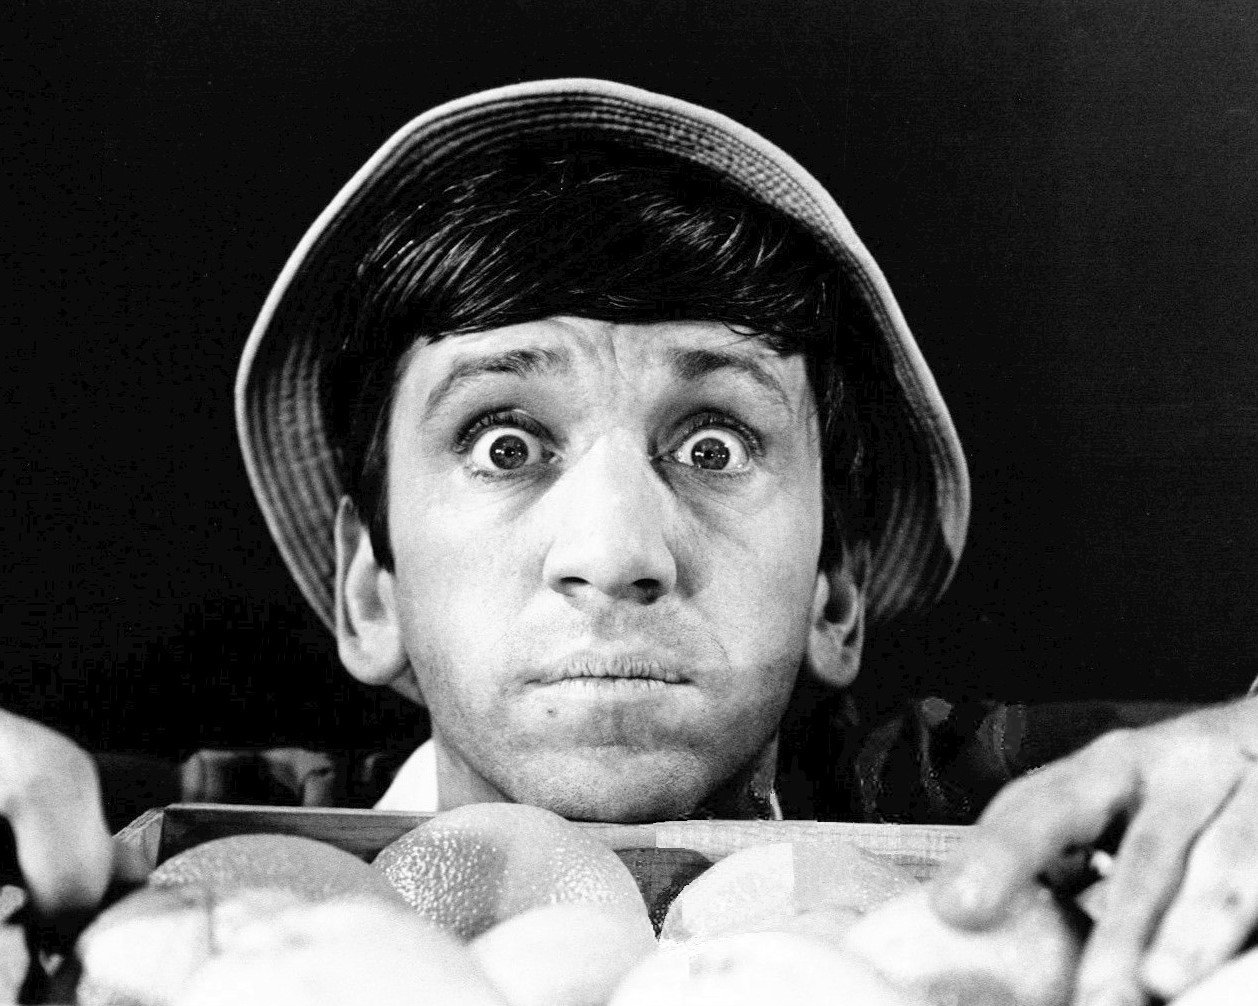 BOB DENVER AS 'GILLIGAN' IN 'GILLIGAN'S ISLAND' - 8X10 PUBLICITY PHOTO (ZZ-436)